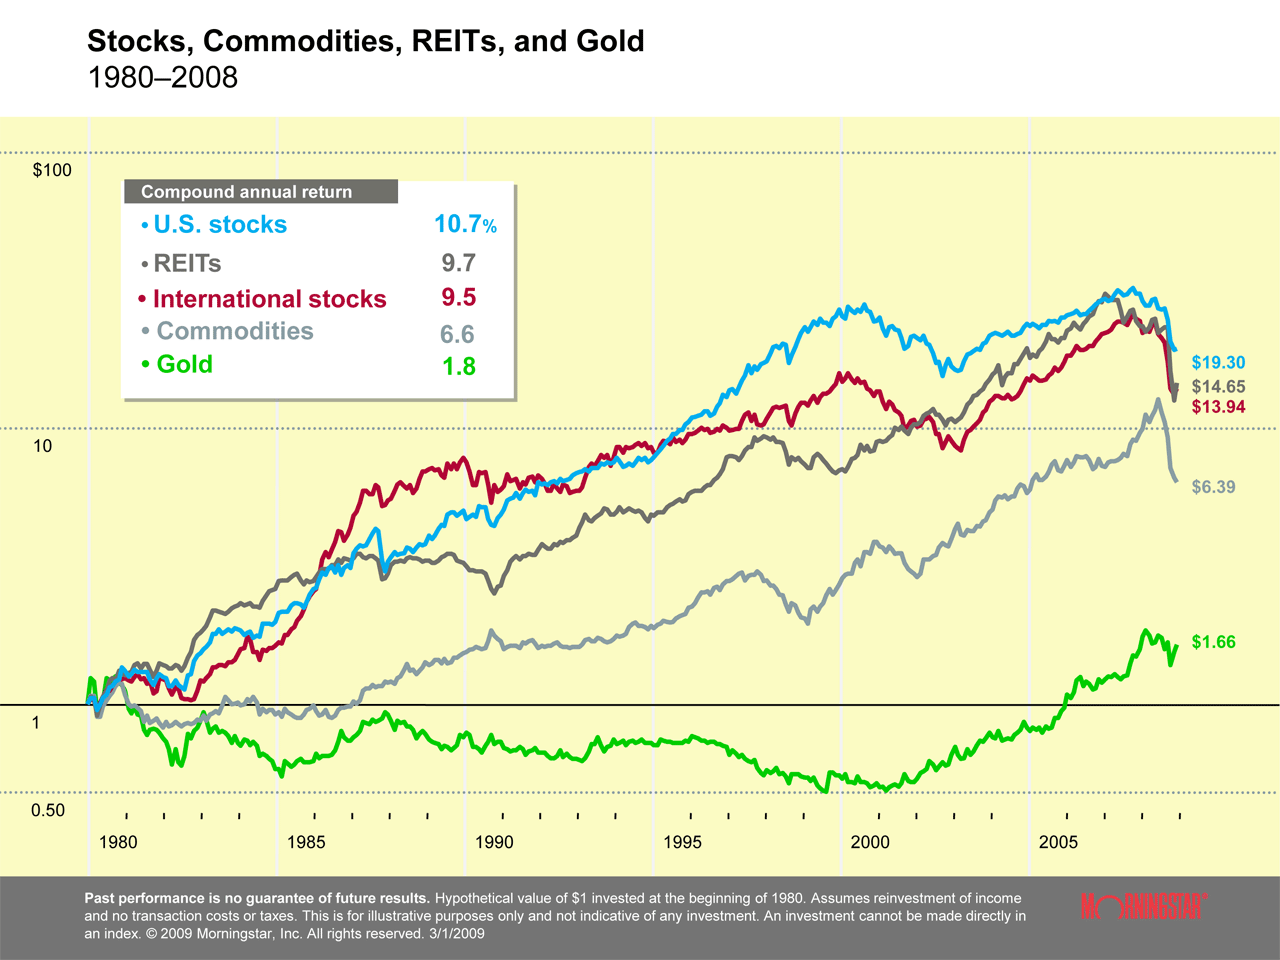 Stocks, Commodities, REITs, and Gold